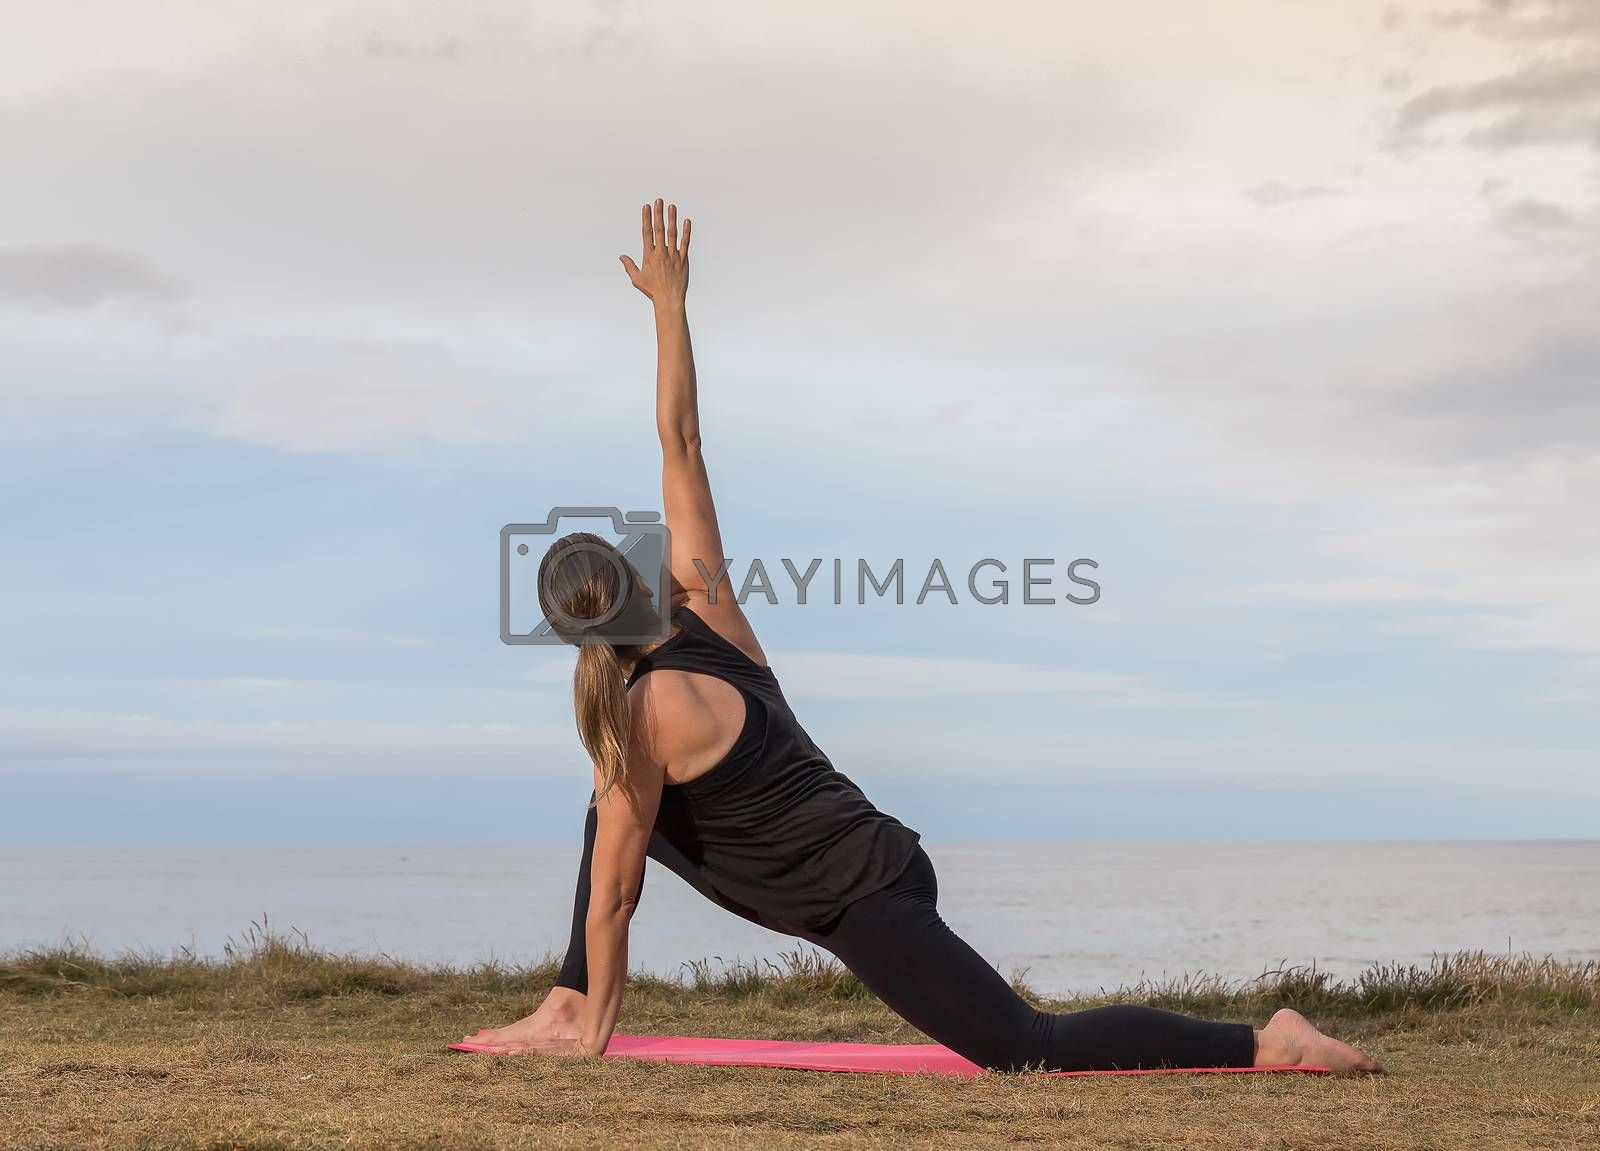 Woman in sportswear stretching outdoors on a pink mat with the sea in the background.